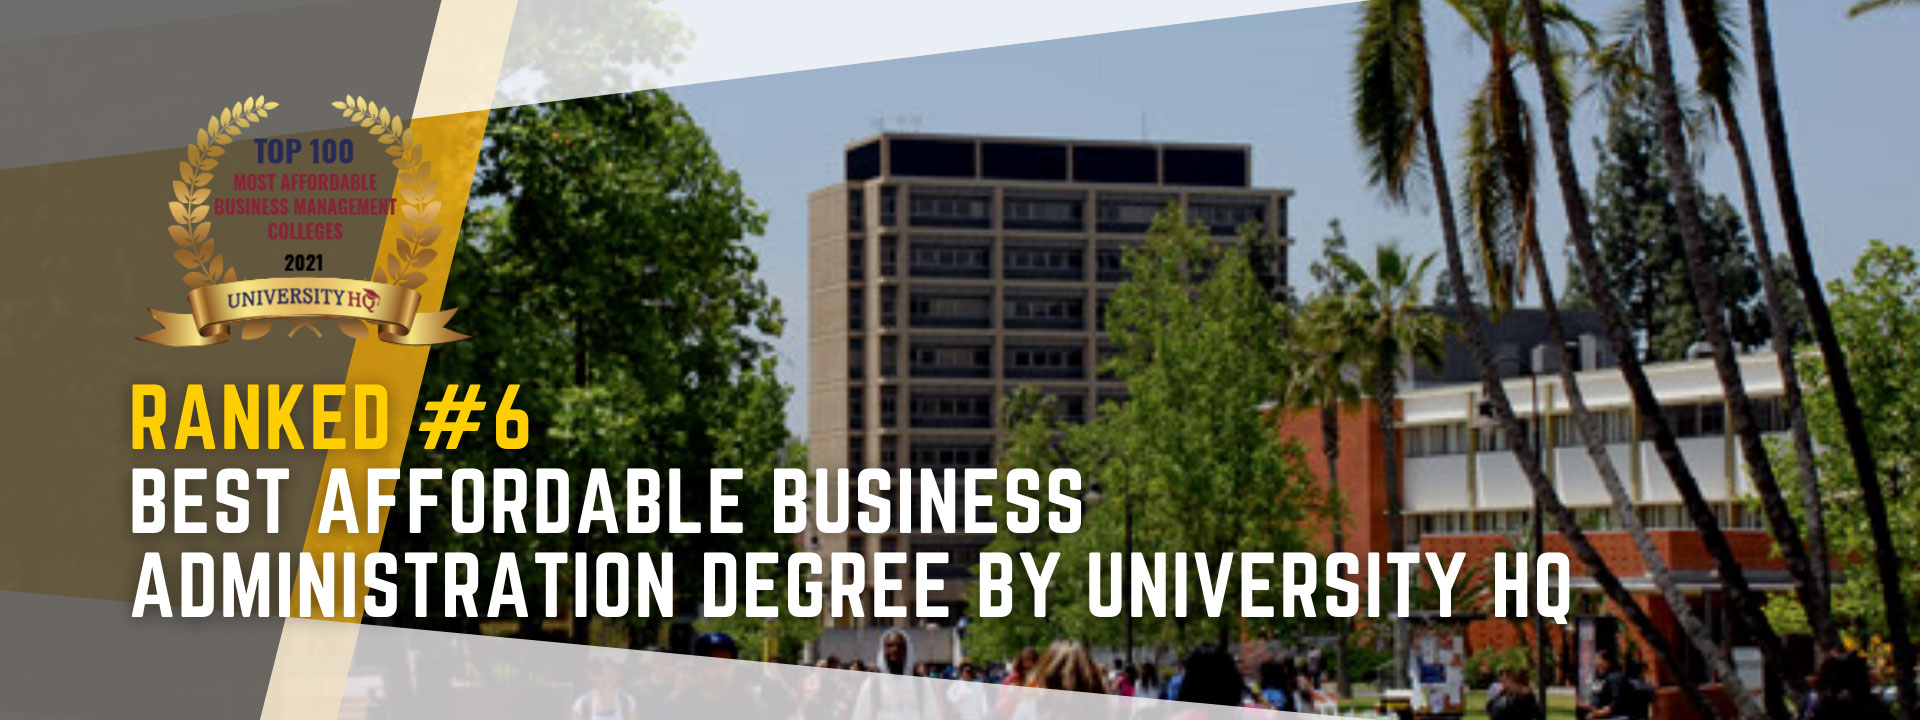 Best affordable business administration degree